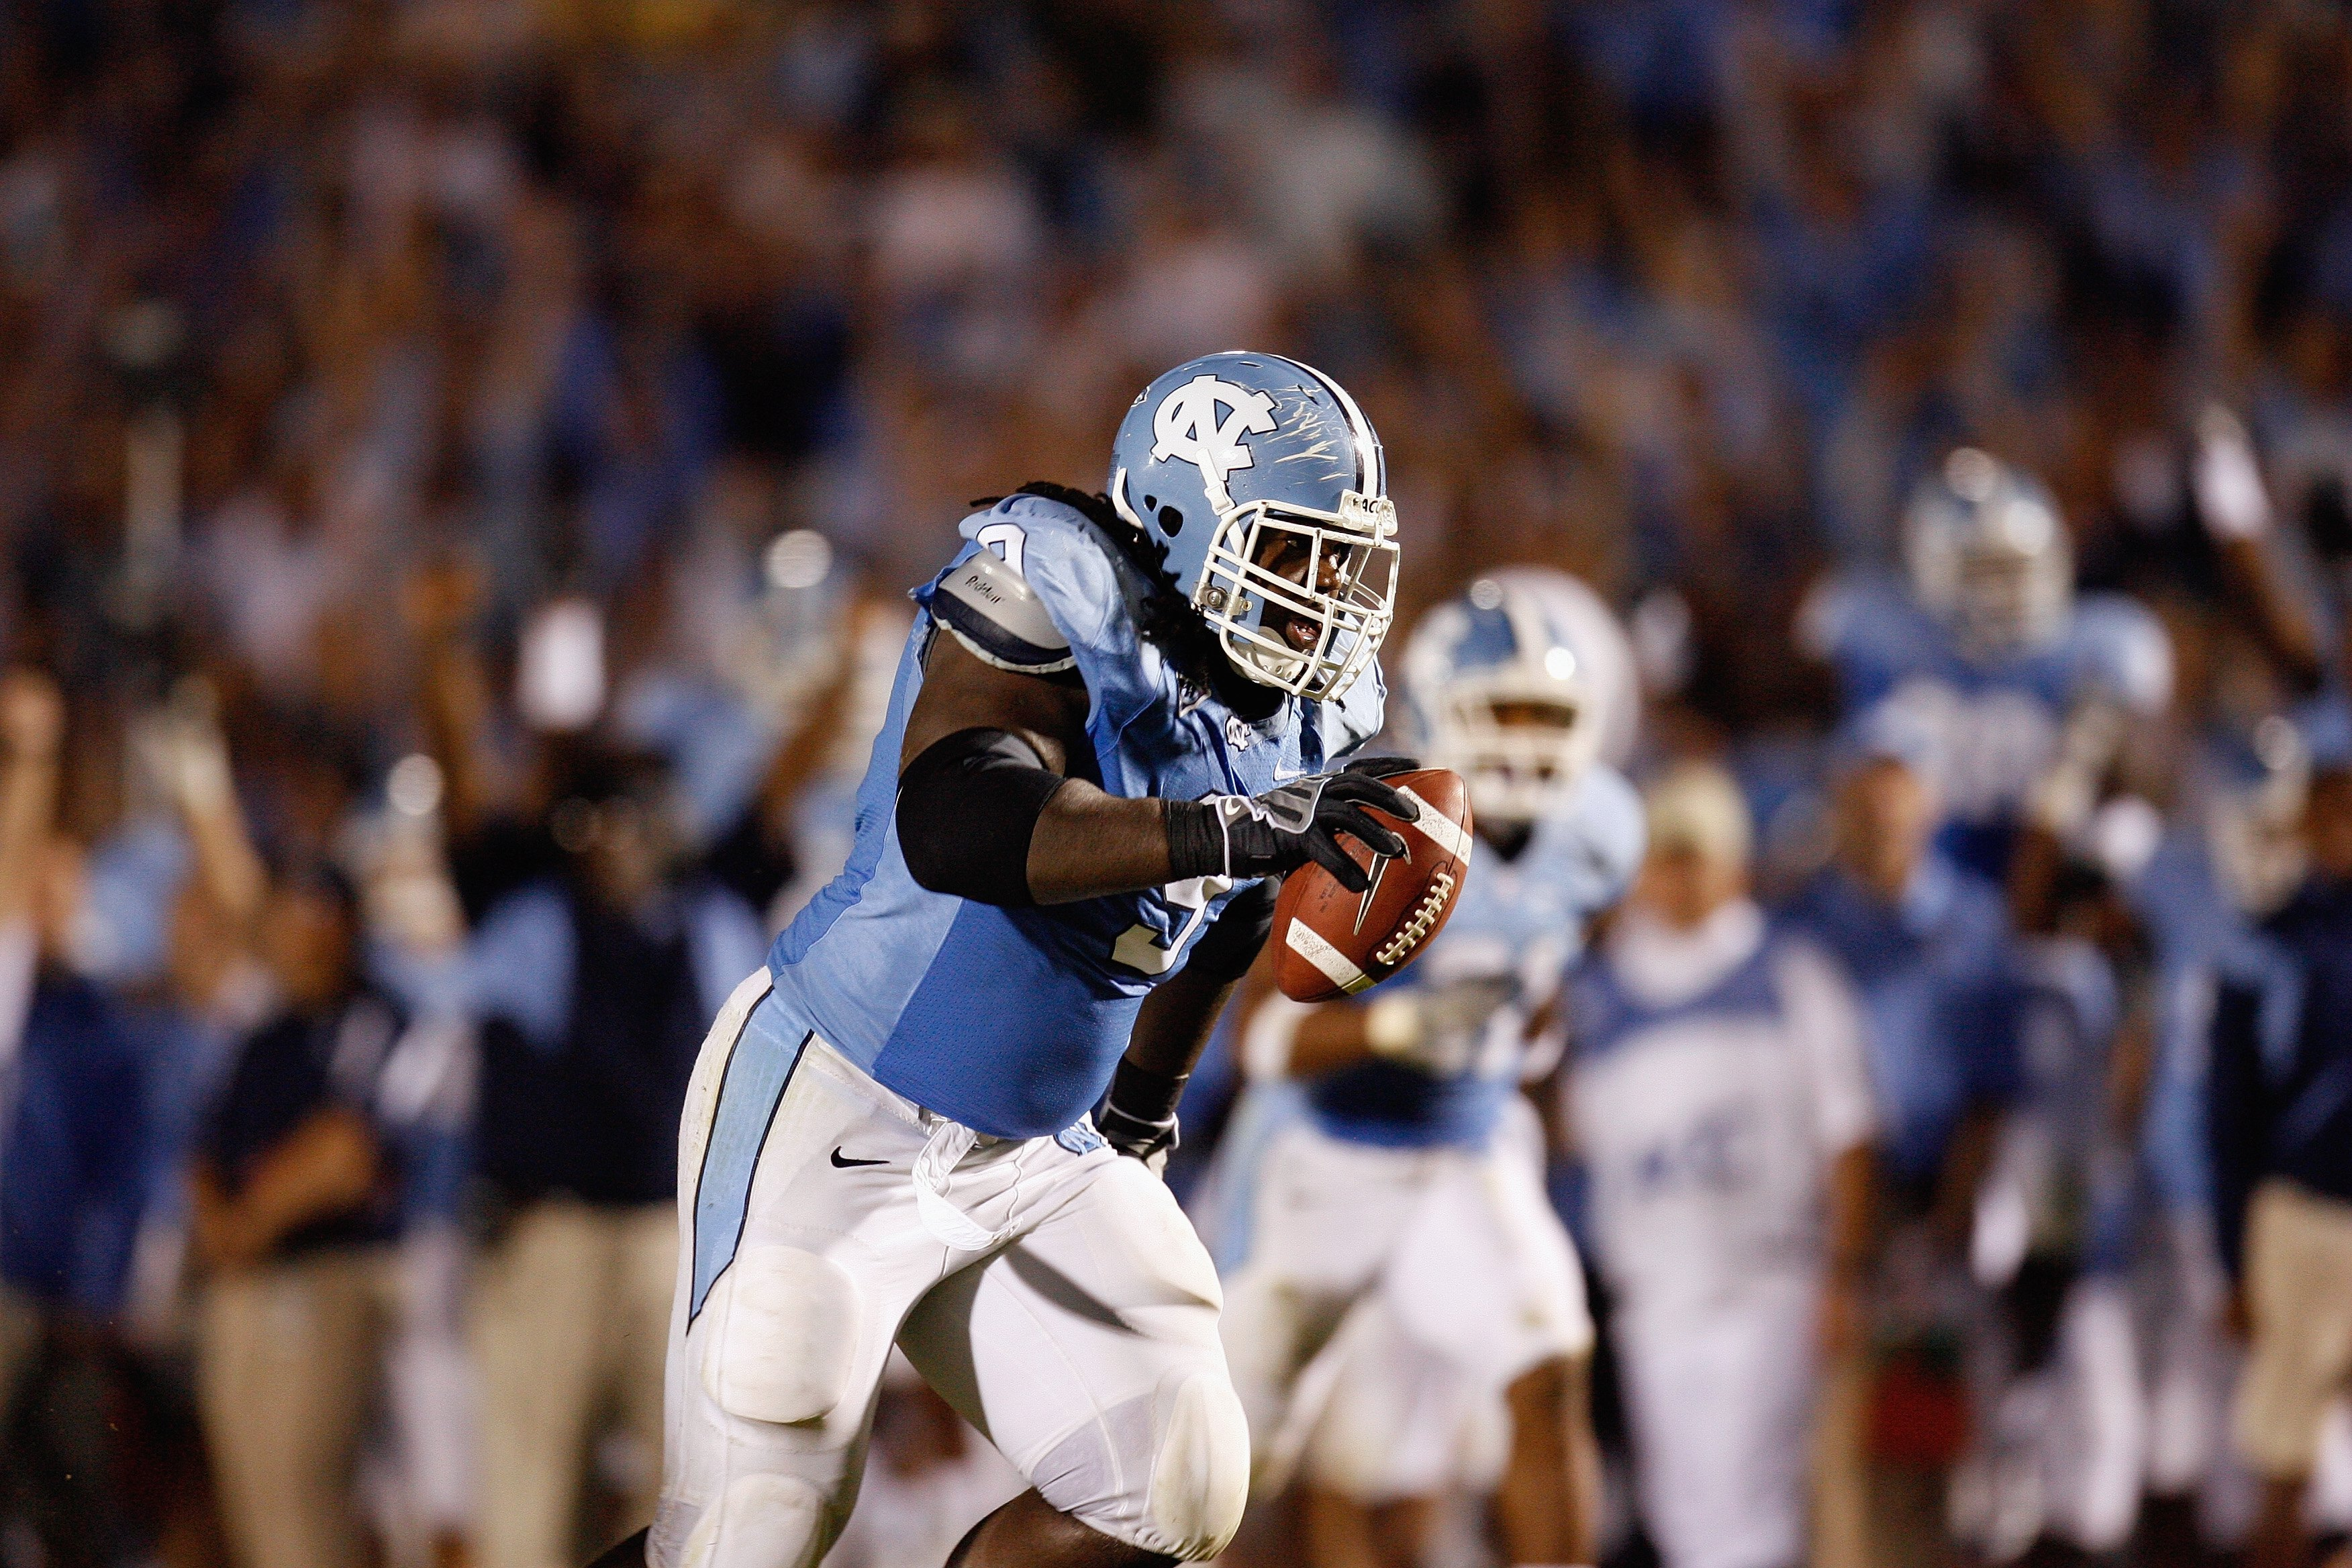 CHAPEL HILL, NC - OCTOBER 4:  Marvin Austin #9 of the North Carolina Tar Heels returns an interception for a touchdown during the game against the Connecticut Huskies at Kenan Stadium on October 4, 2008 in Chapel Hill, North Carolina.  (Photo by Kevin C.